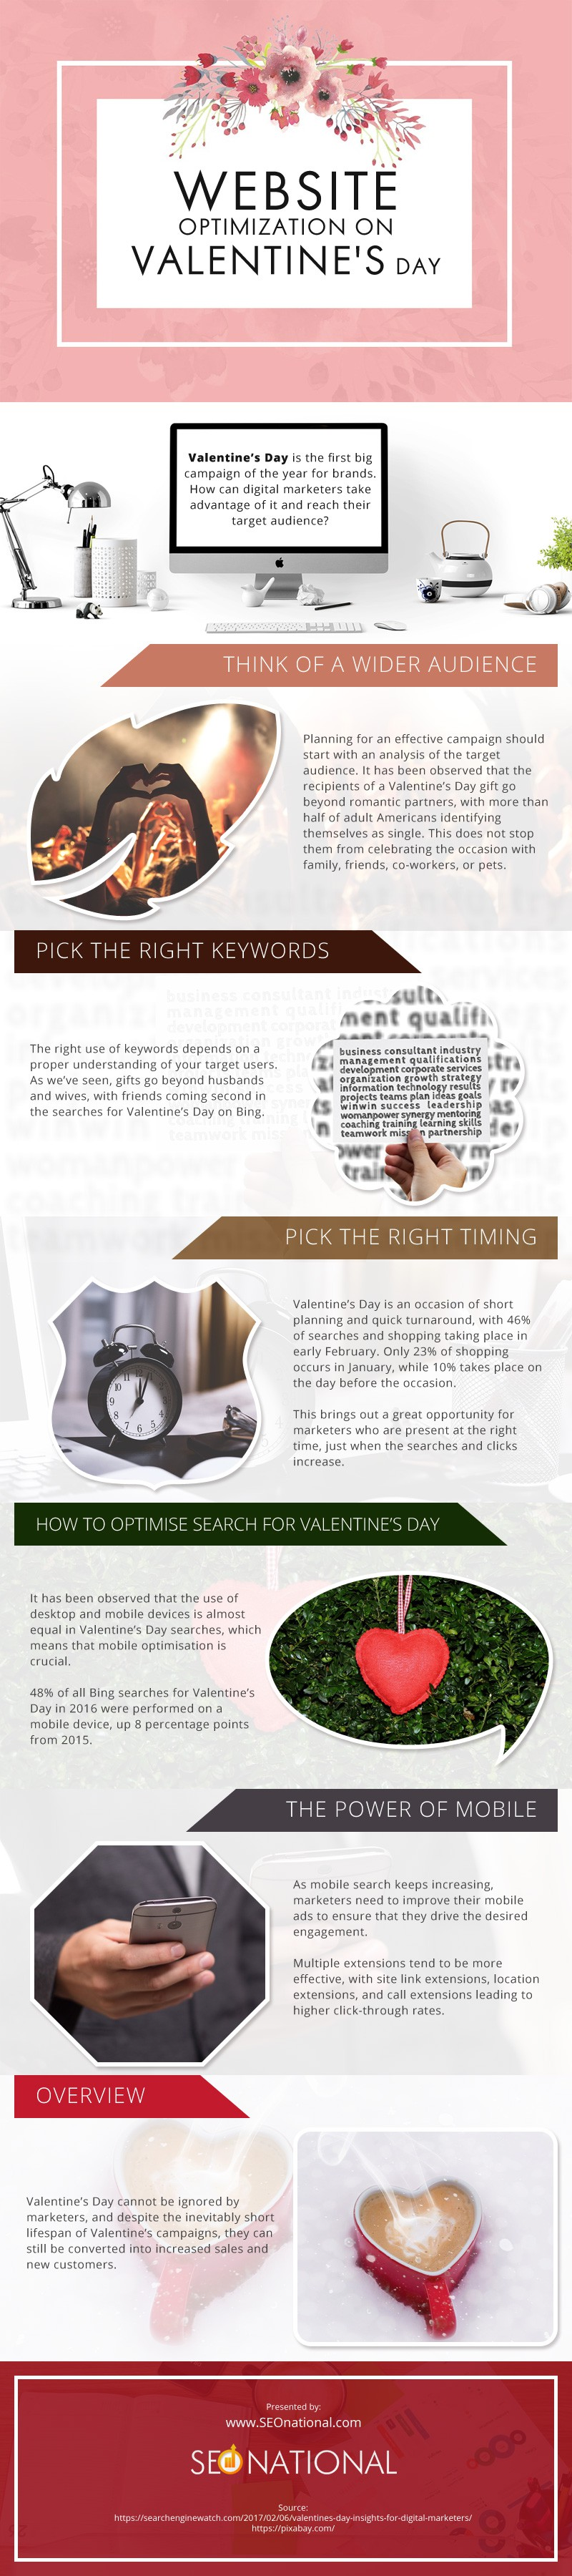 Website-Optimization-on-Valentines-Day Infographic